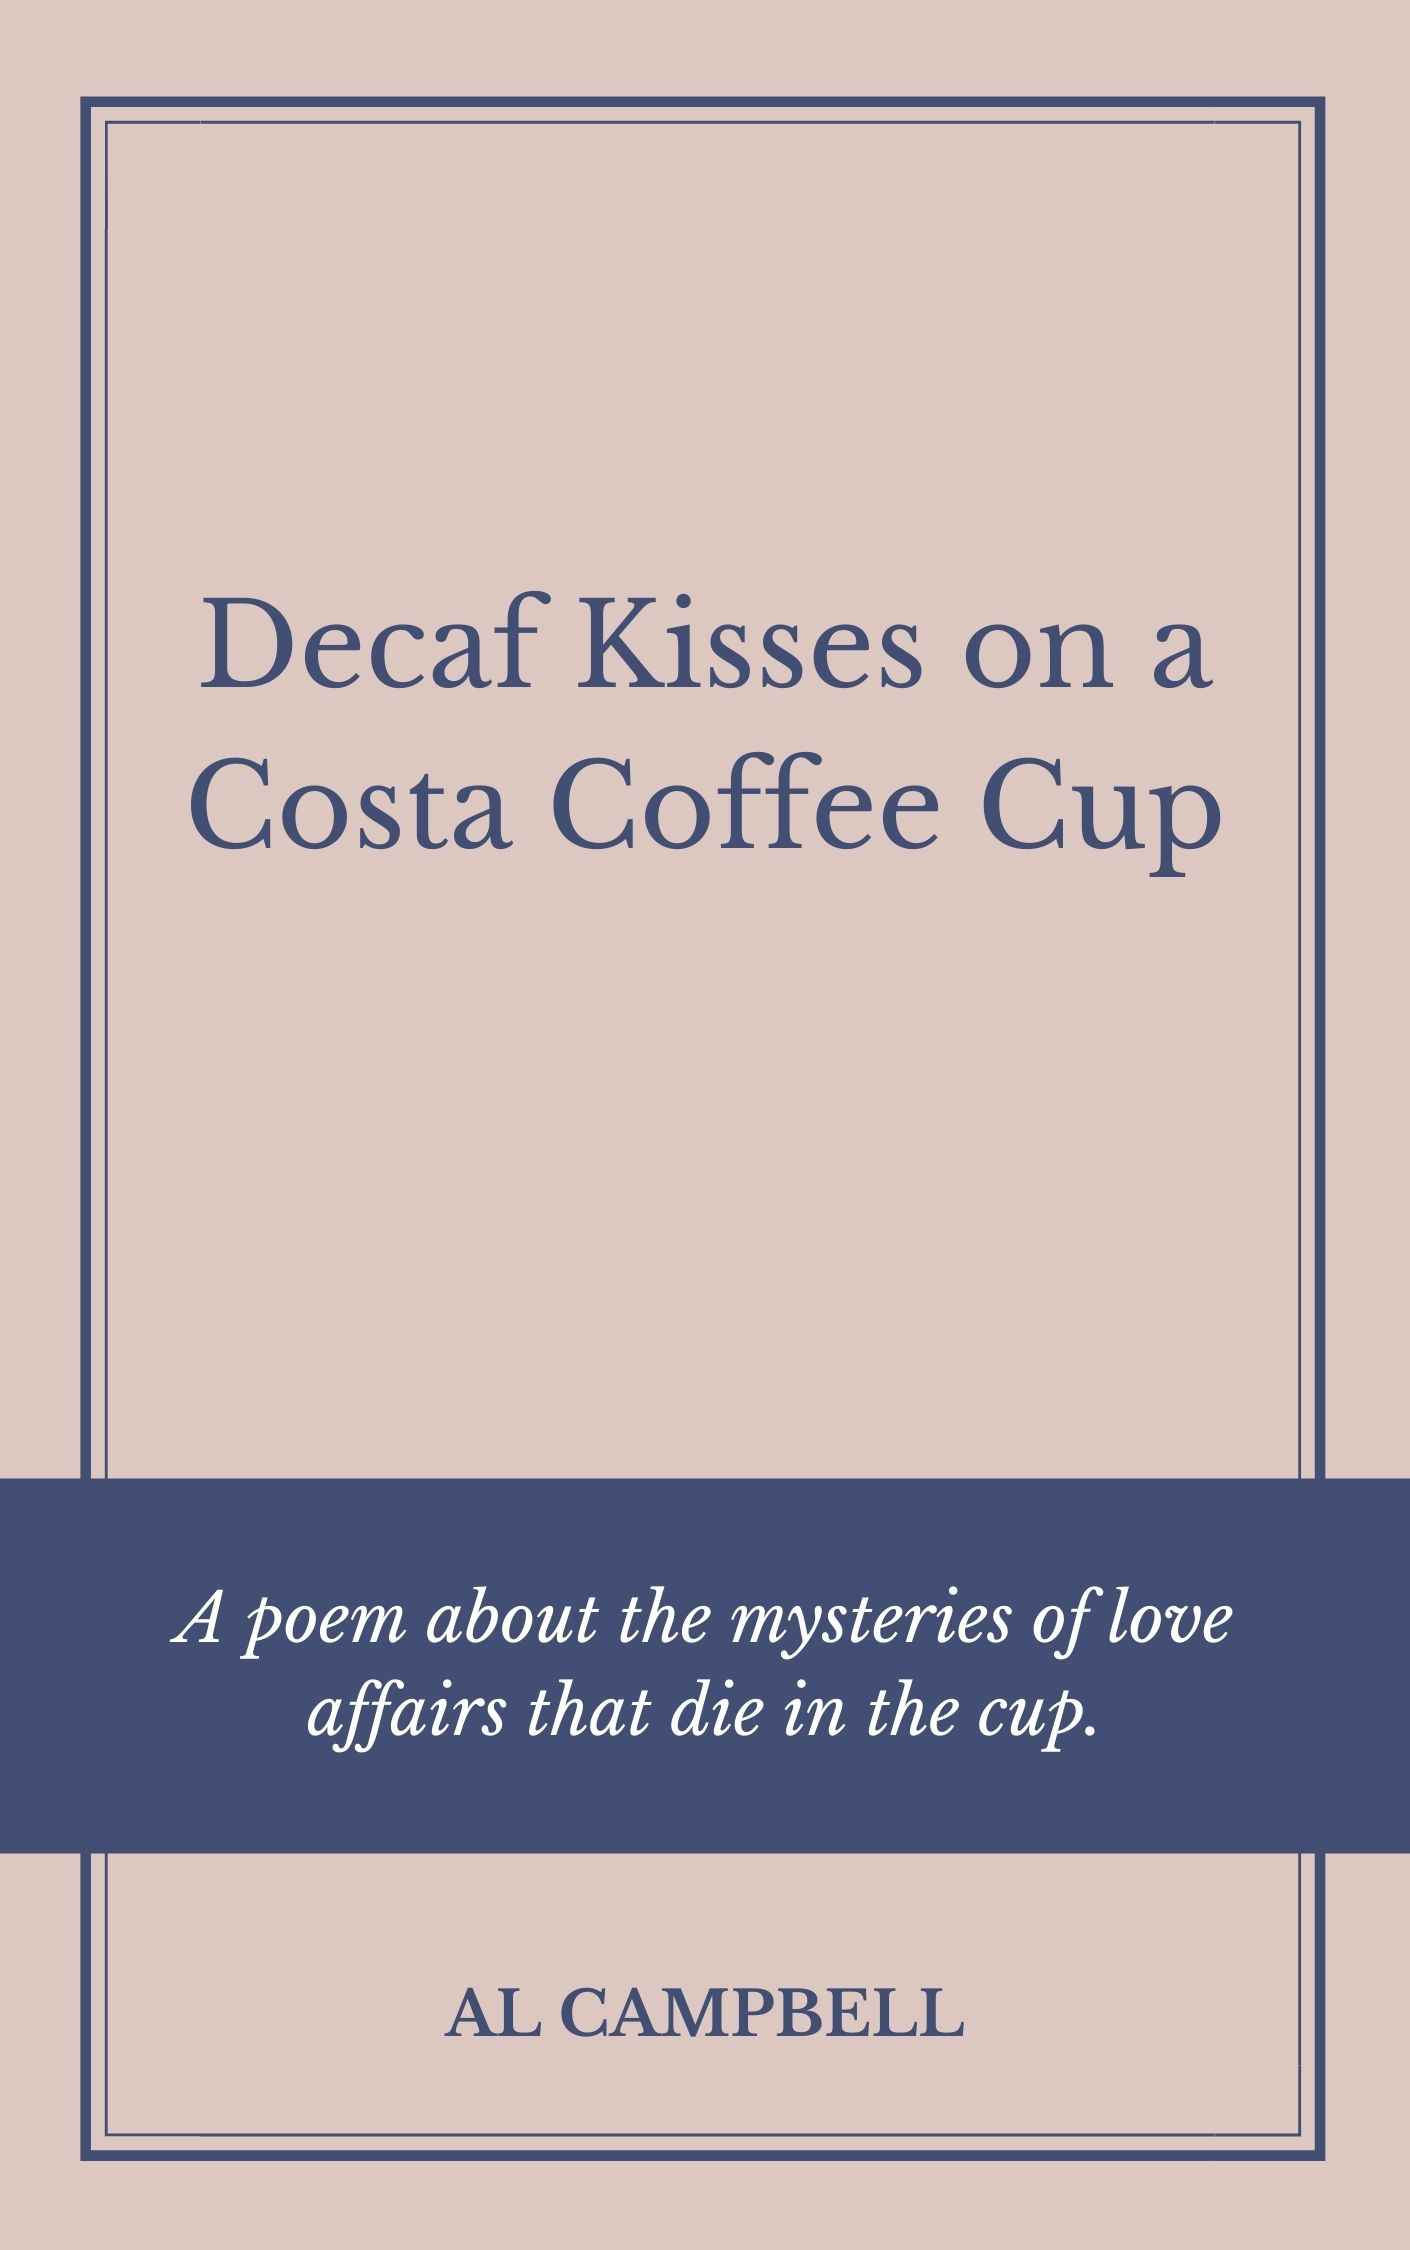 Decaf Kisses on a Costa Coffee Cup - By Al Campbell